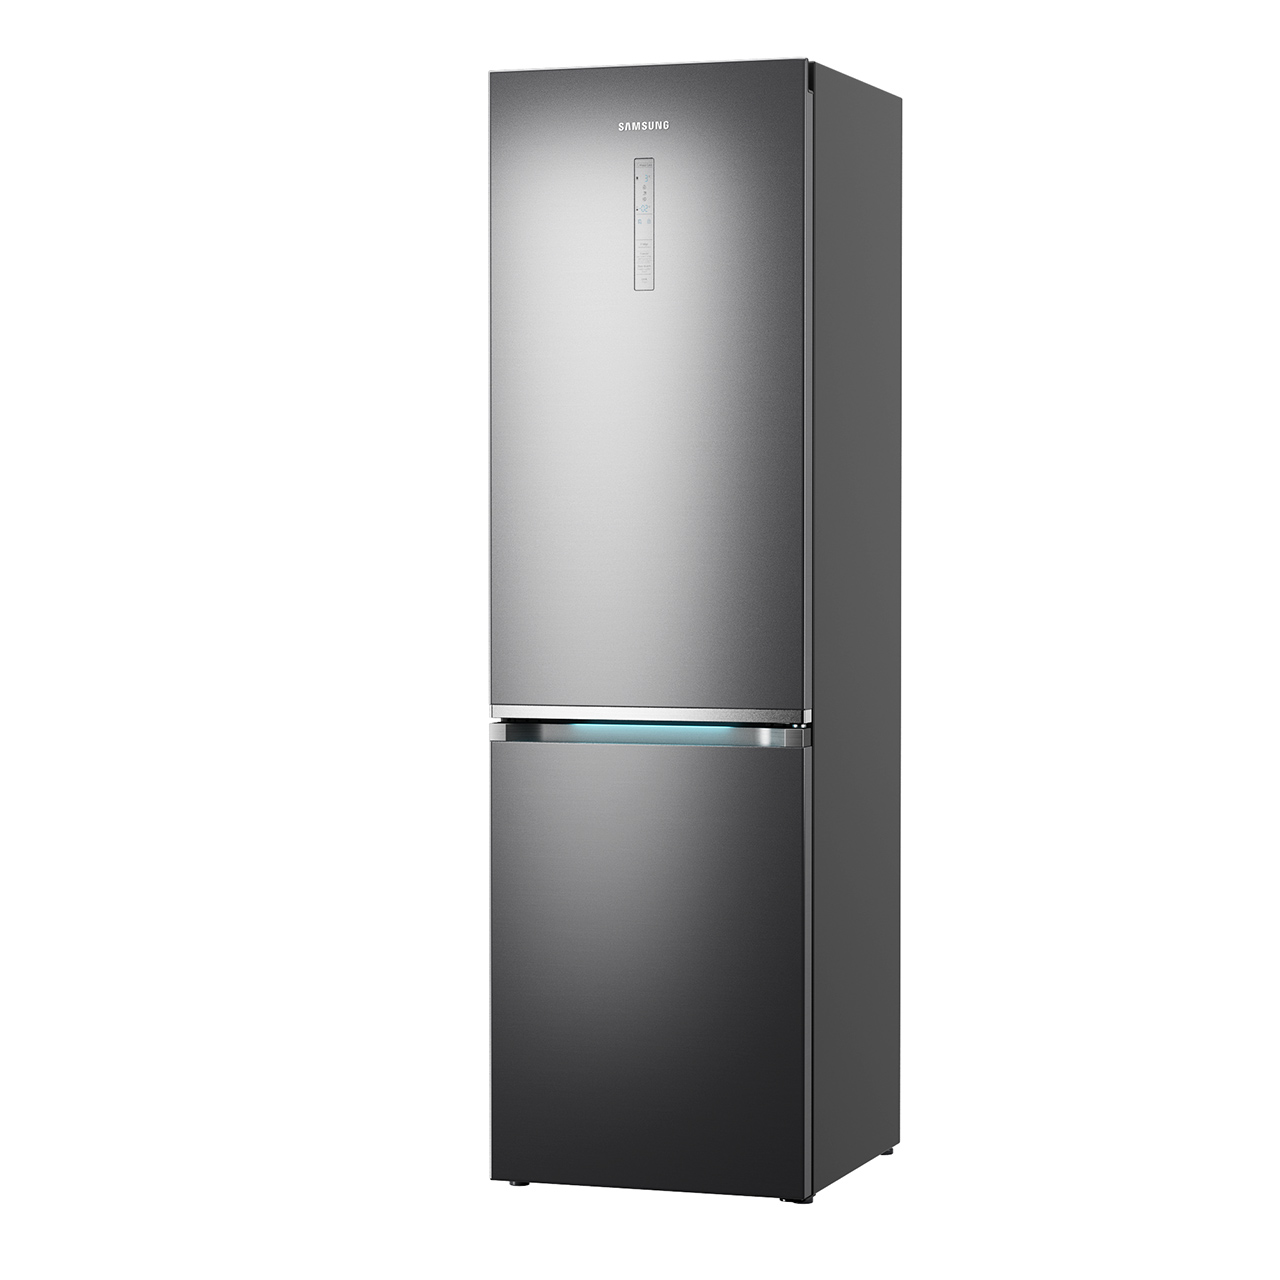 RB7000 Fridge-Freezer with Display 202 cm by Samsung